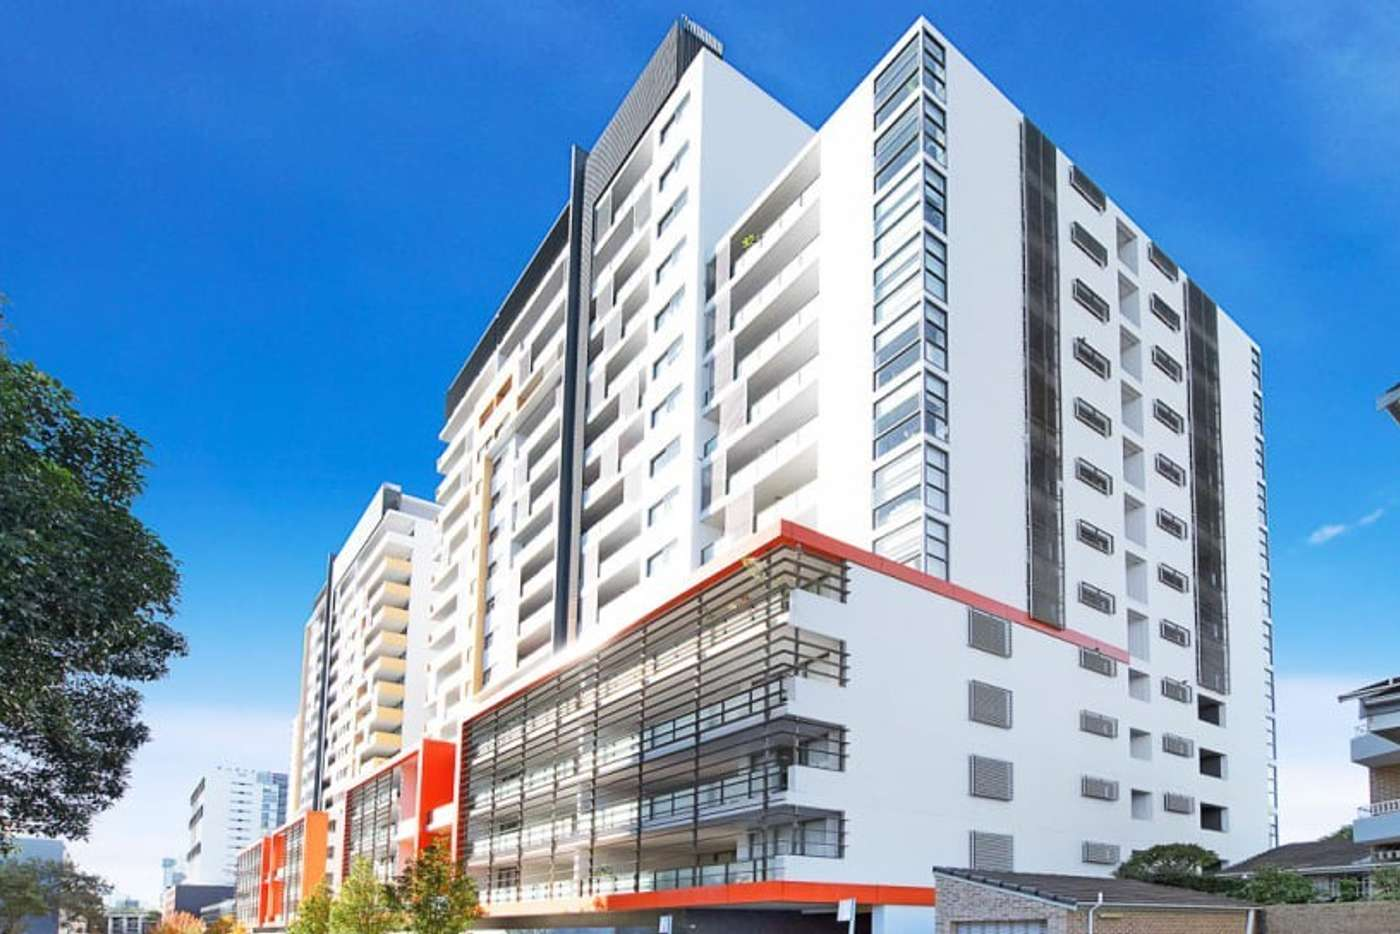 Main view of Homely apartment listing, 8 Cowper St, Parramatta NSW 2150